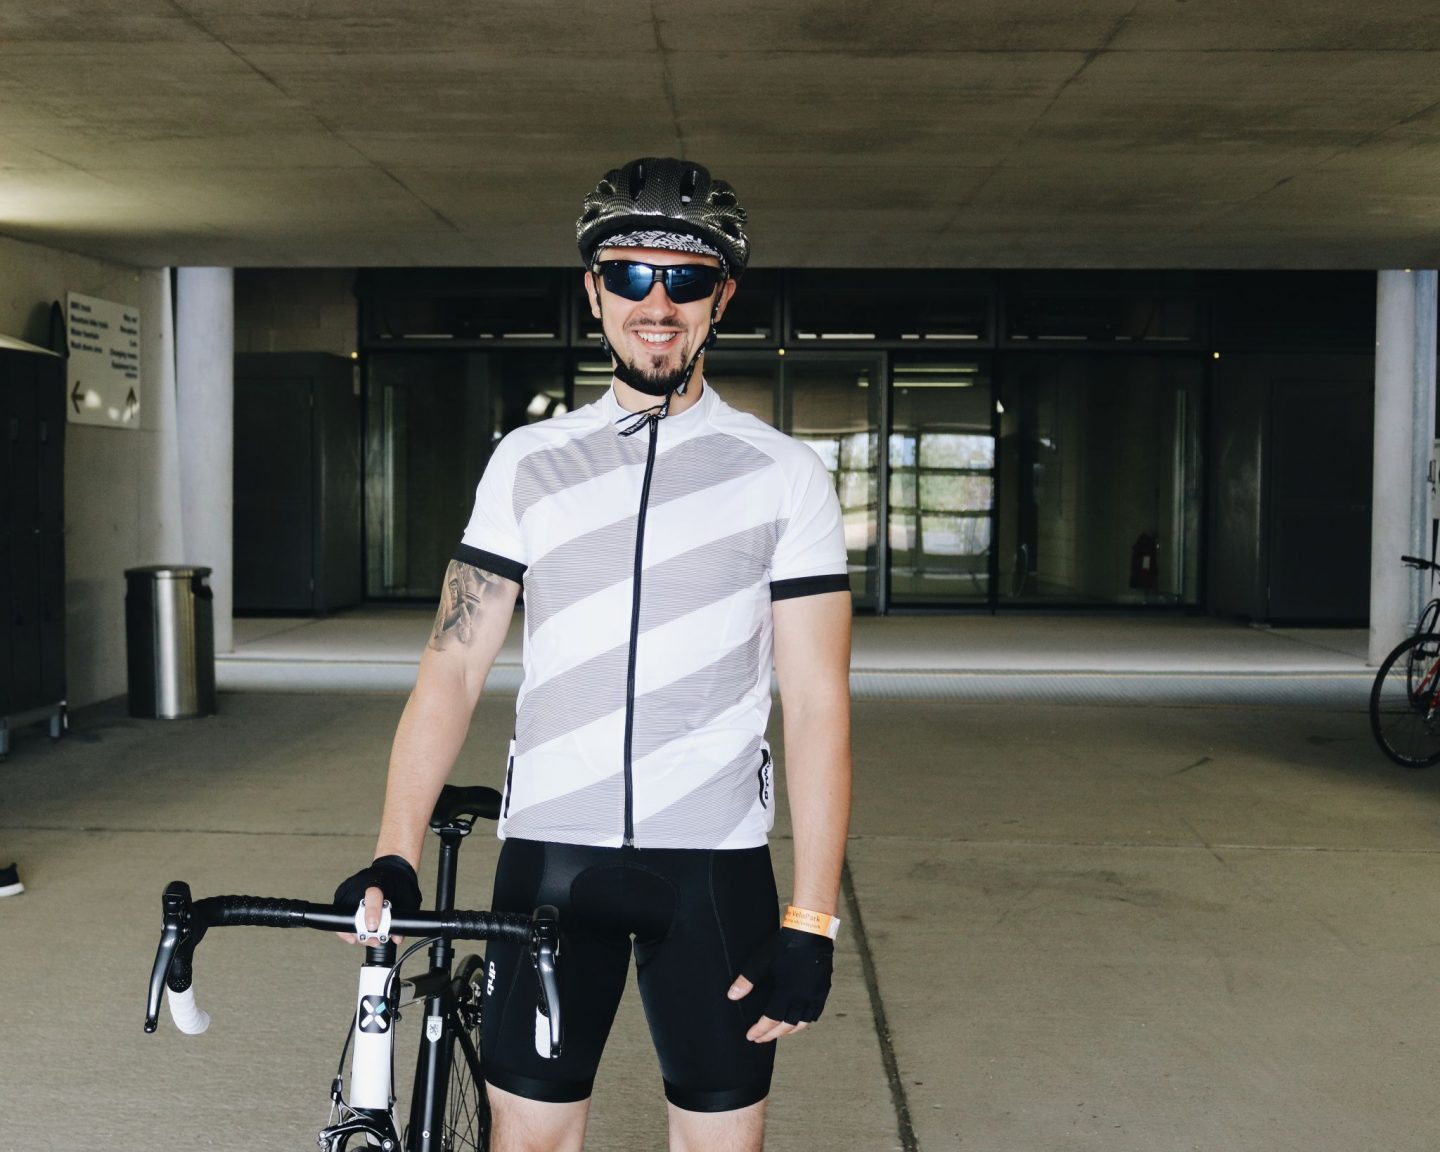 road cycling essentials - cycling jersey from decathlon